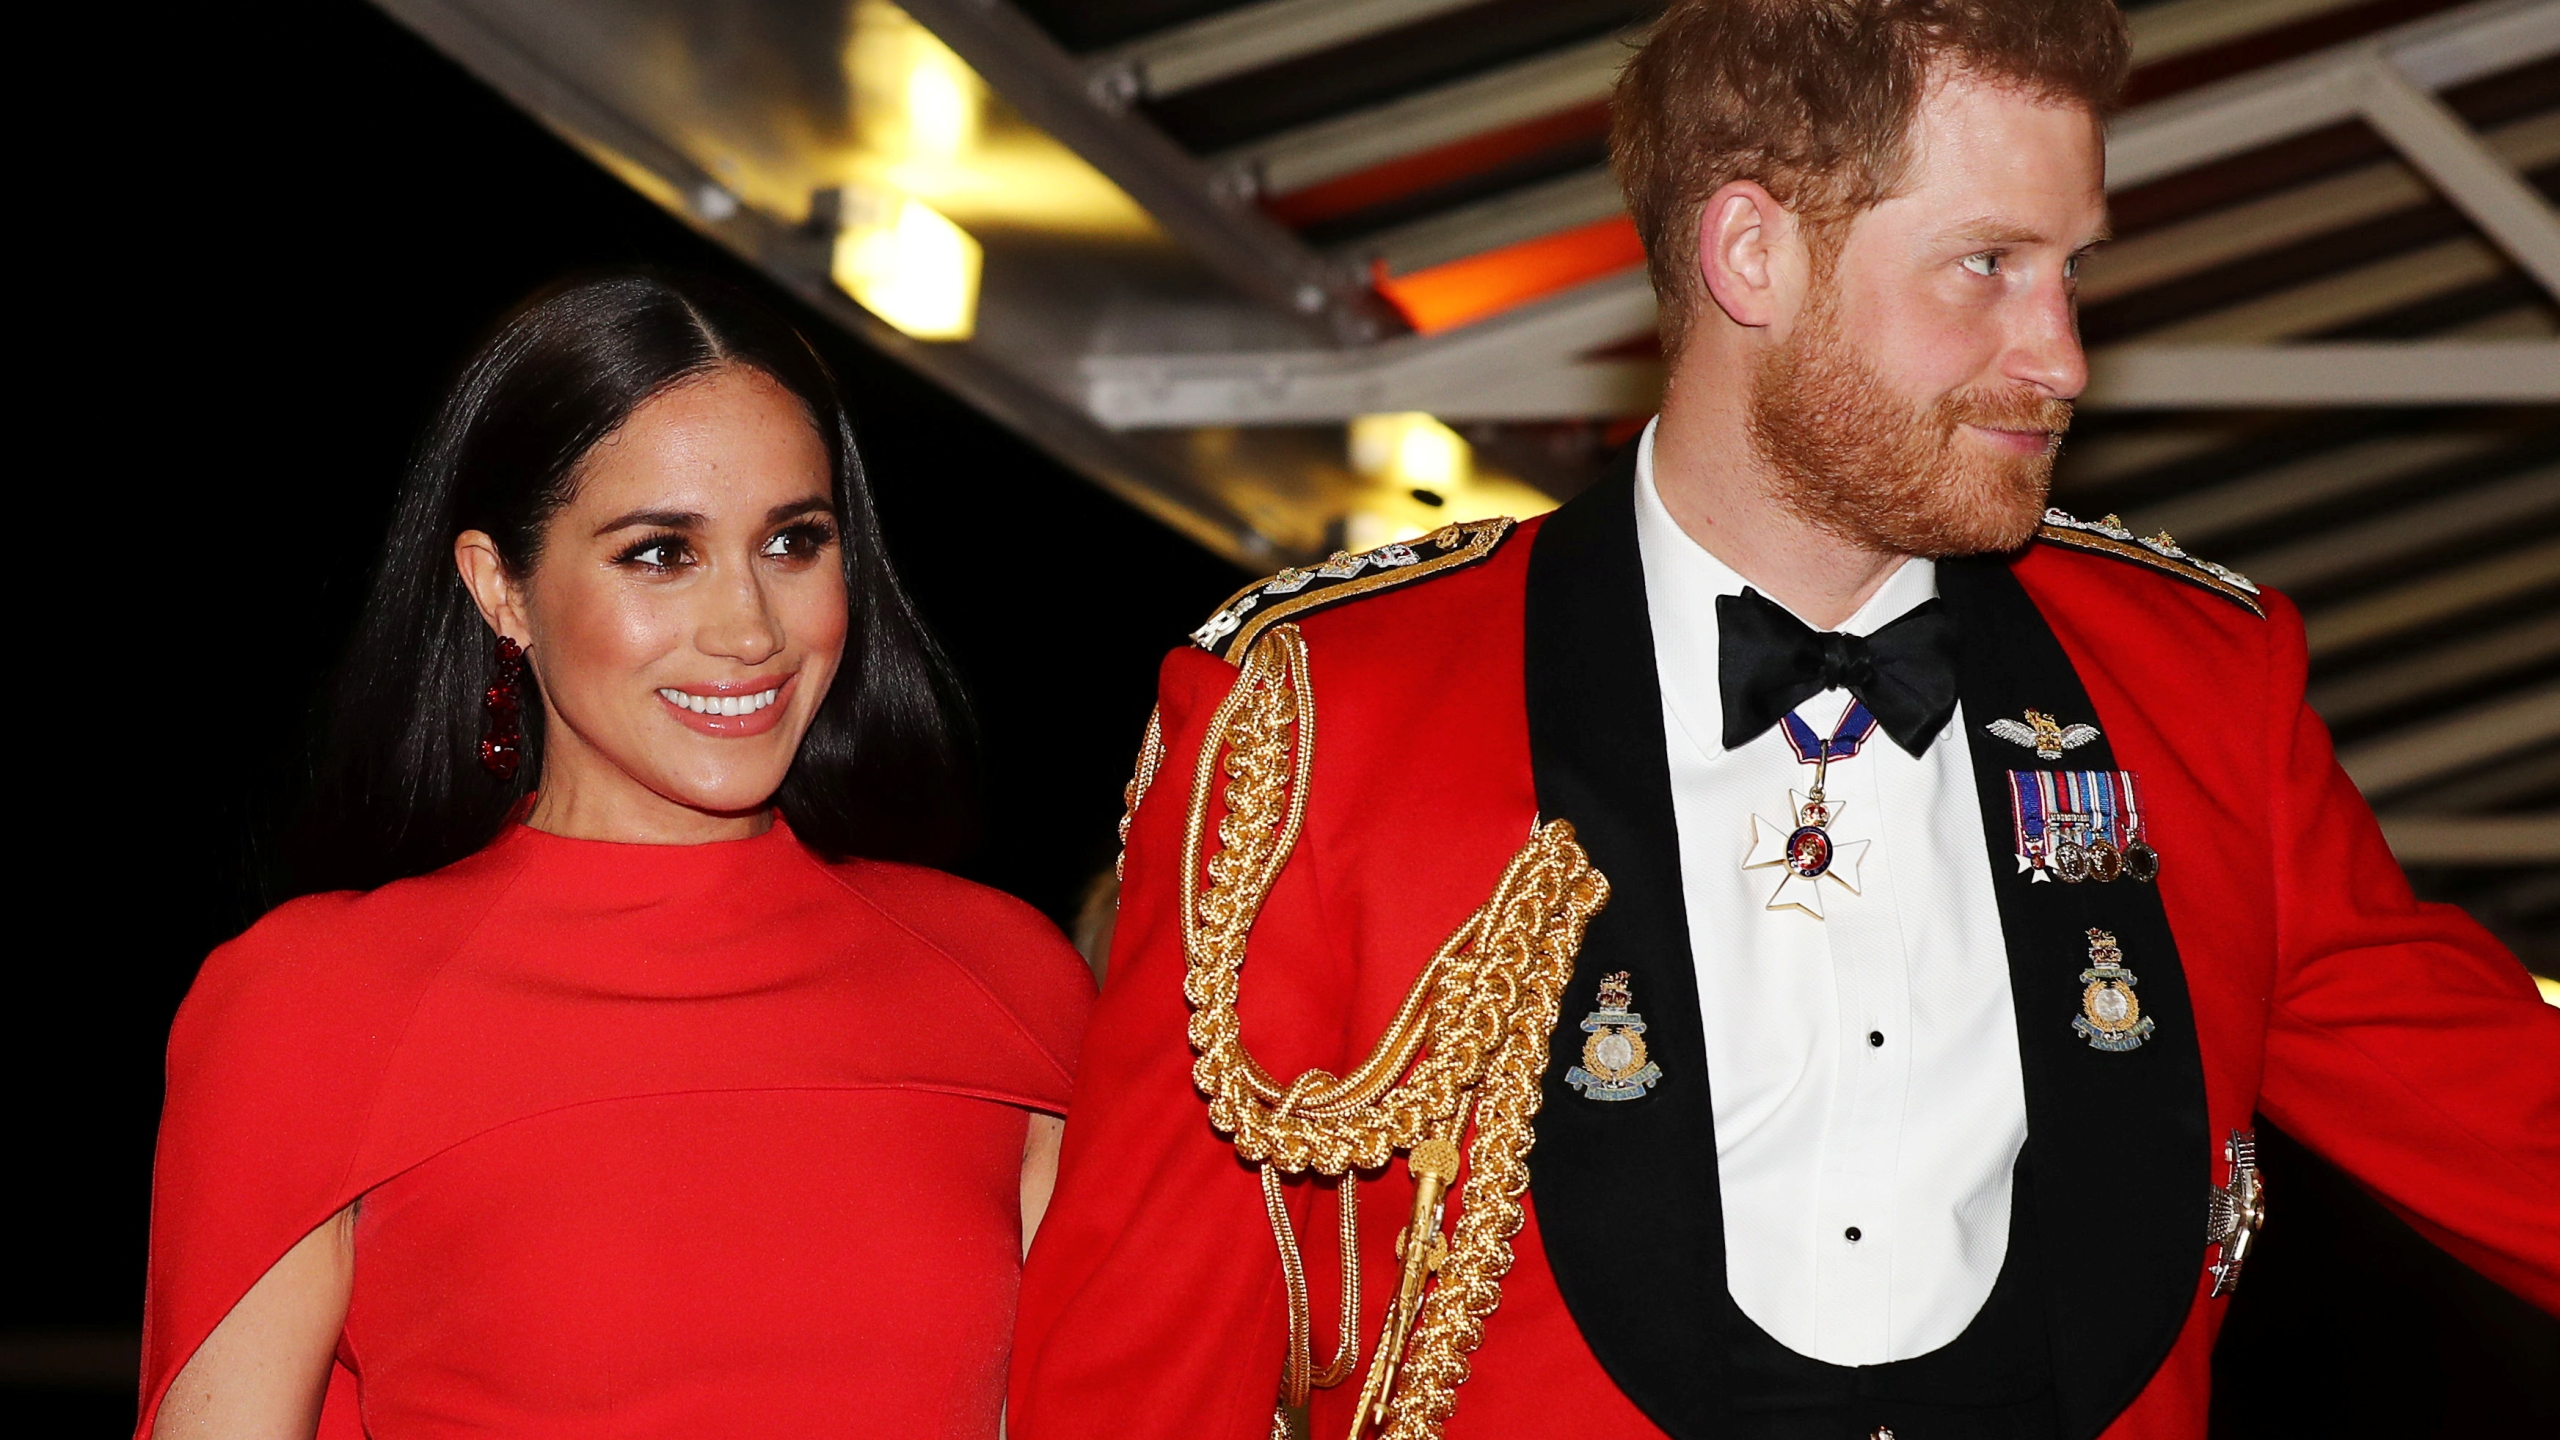 Britain's Prince Harry, Duke of Sussex and Meghan, Duchess of Sussex attend The Mountbatten Festival of Music at the Royal Albert Hall in London on March 7, 2020. (Simon Dawson/POOL/AFP via Getty Images)